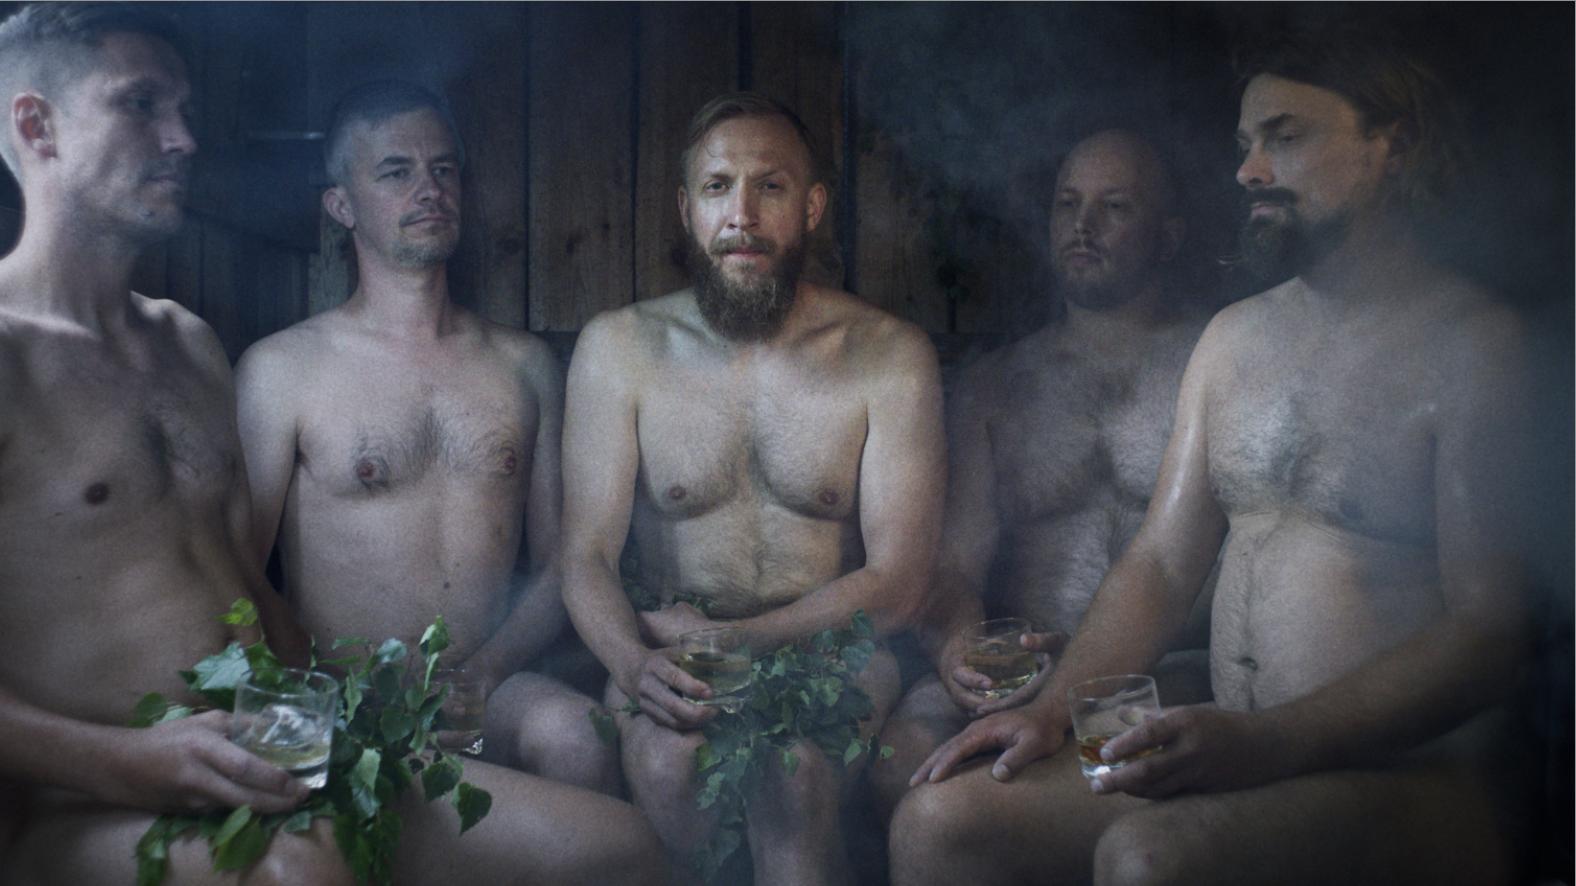 Five men sit in a finnish sauna naked.